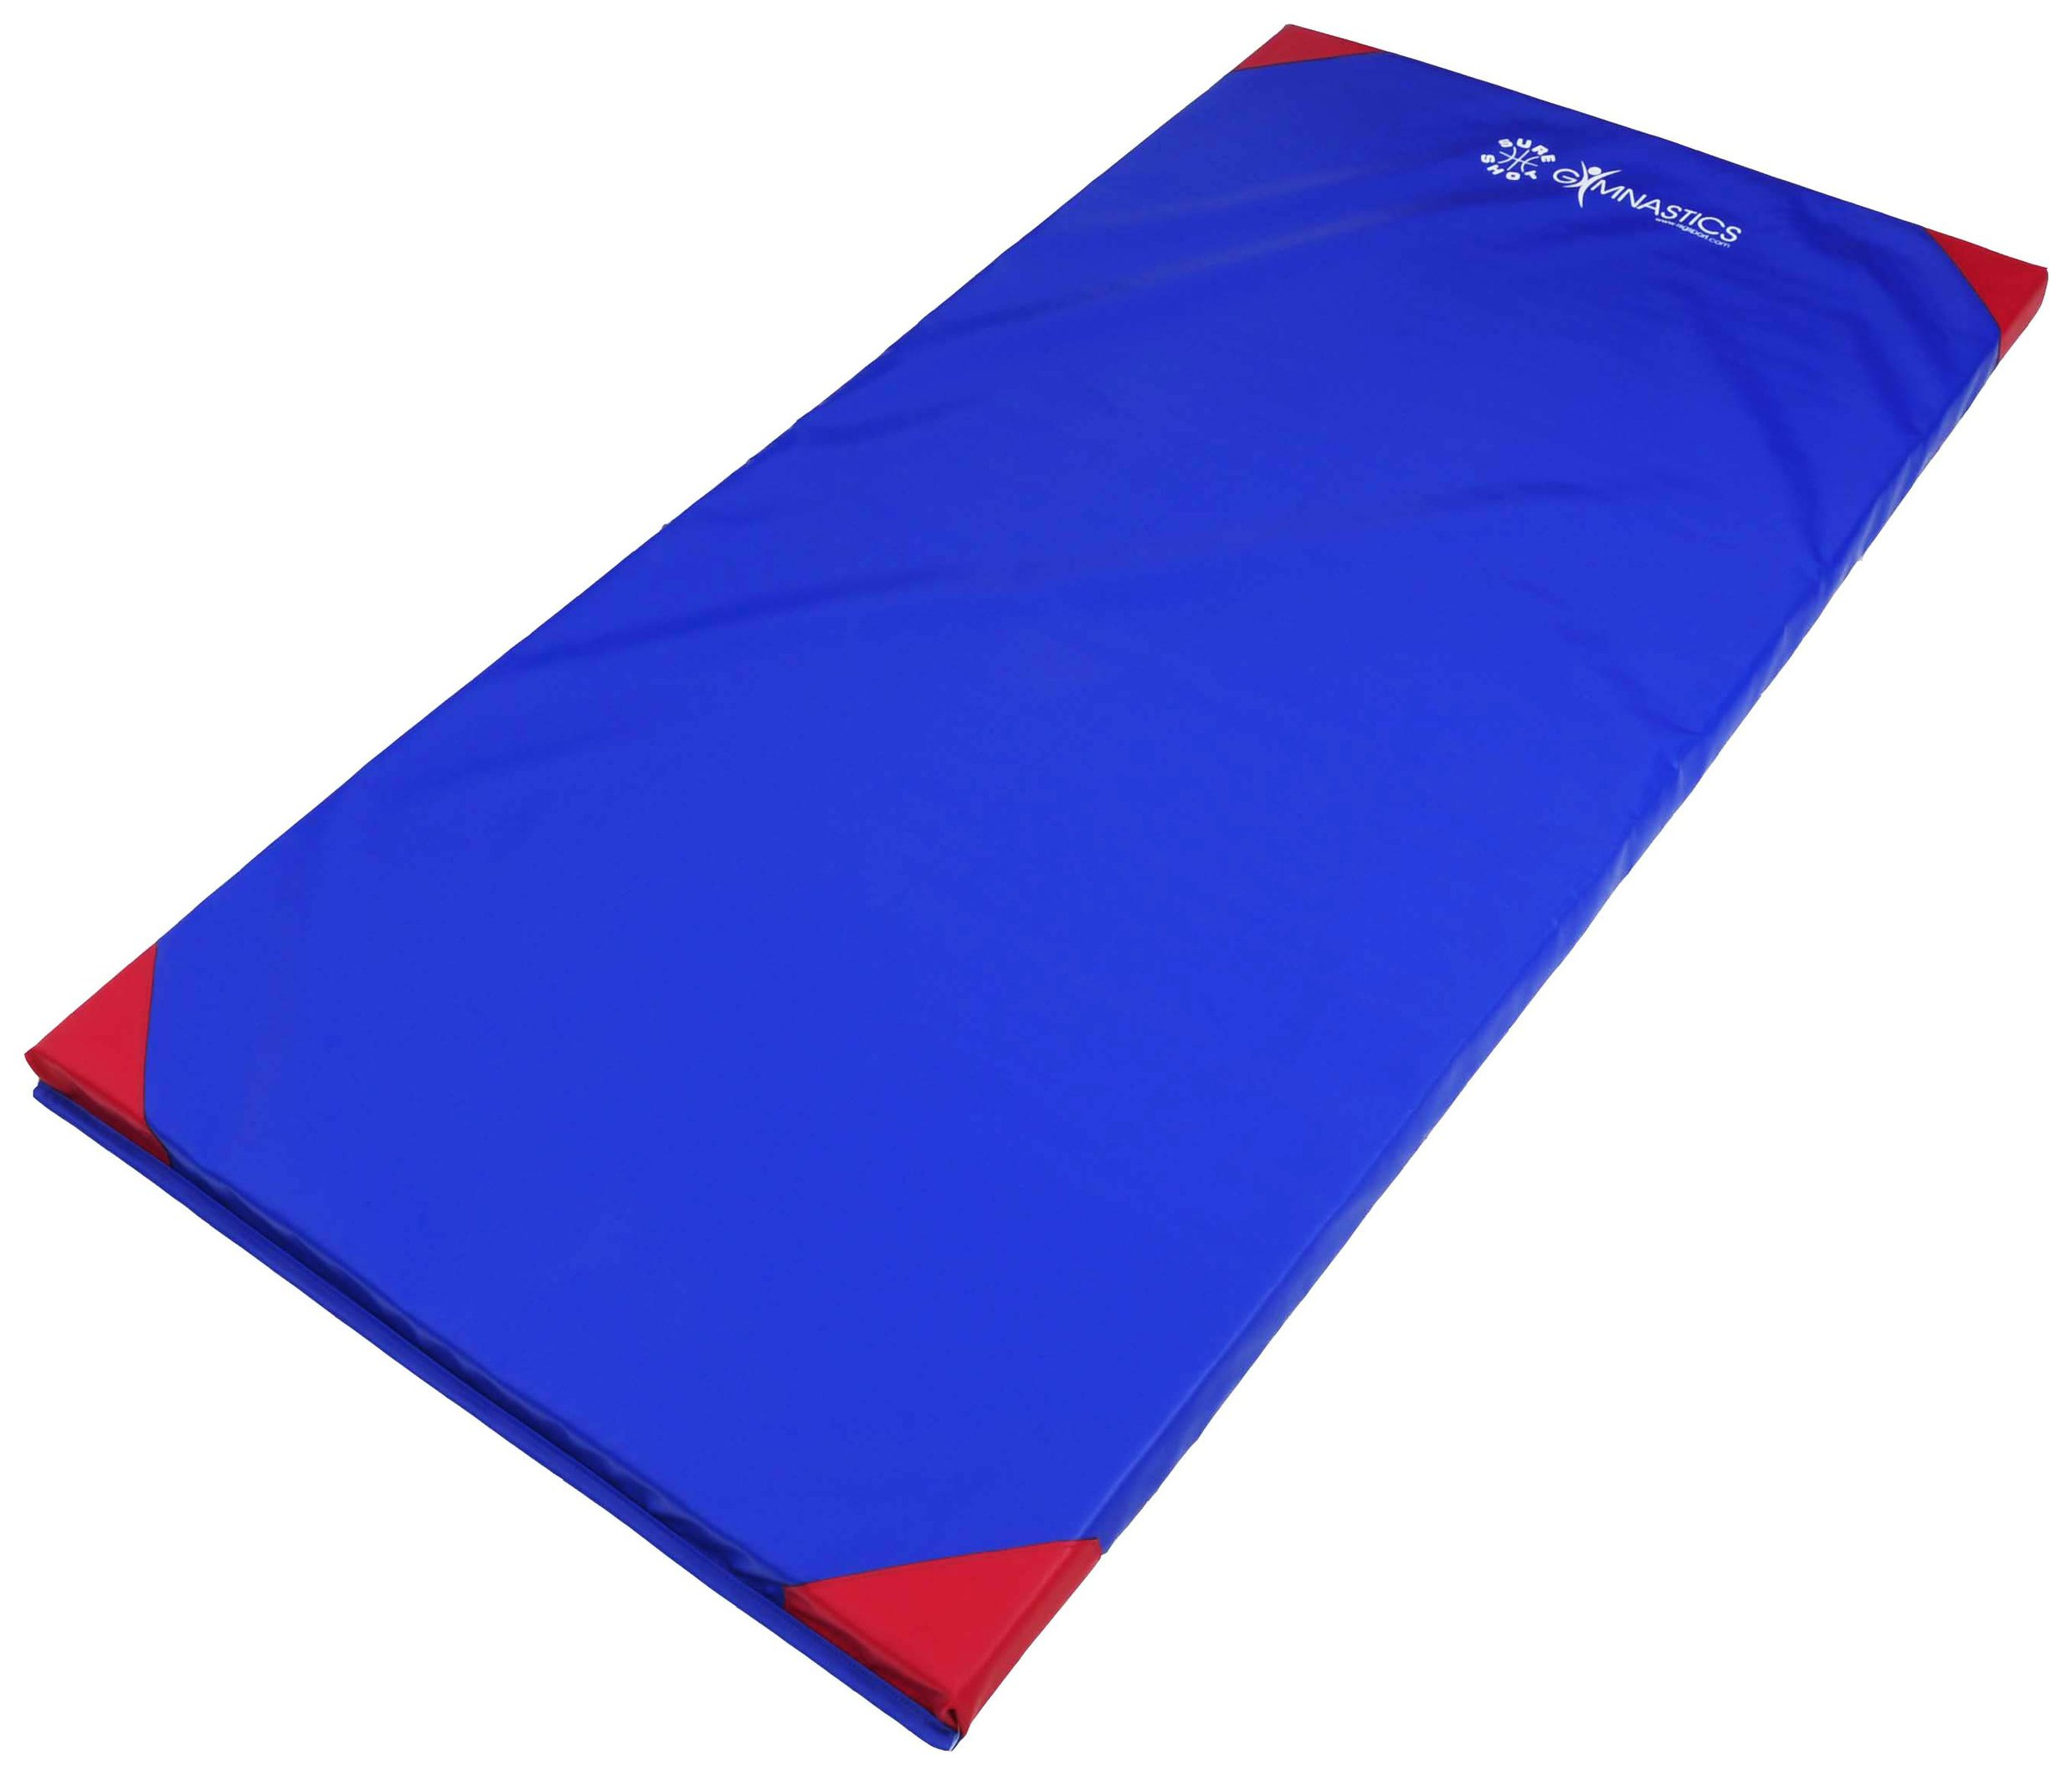 SALE On Sure Shot 32mm Deluxe Gym Mat